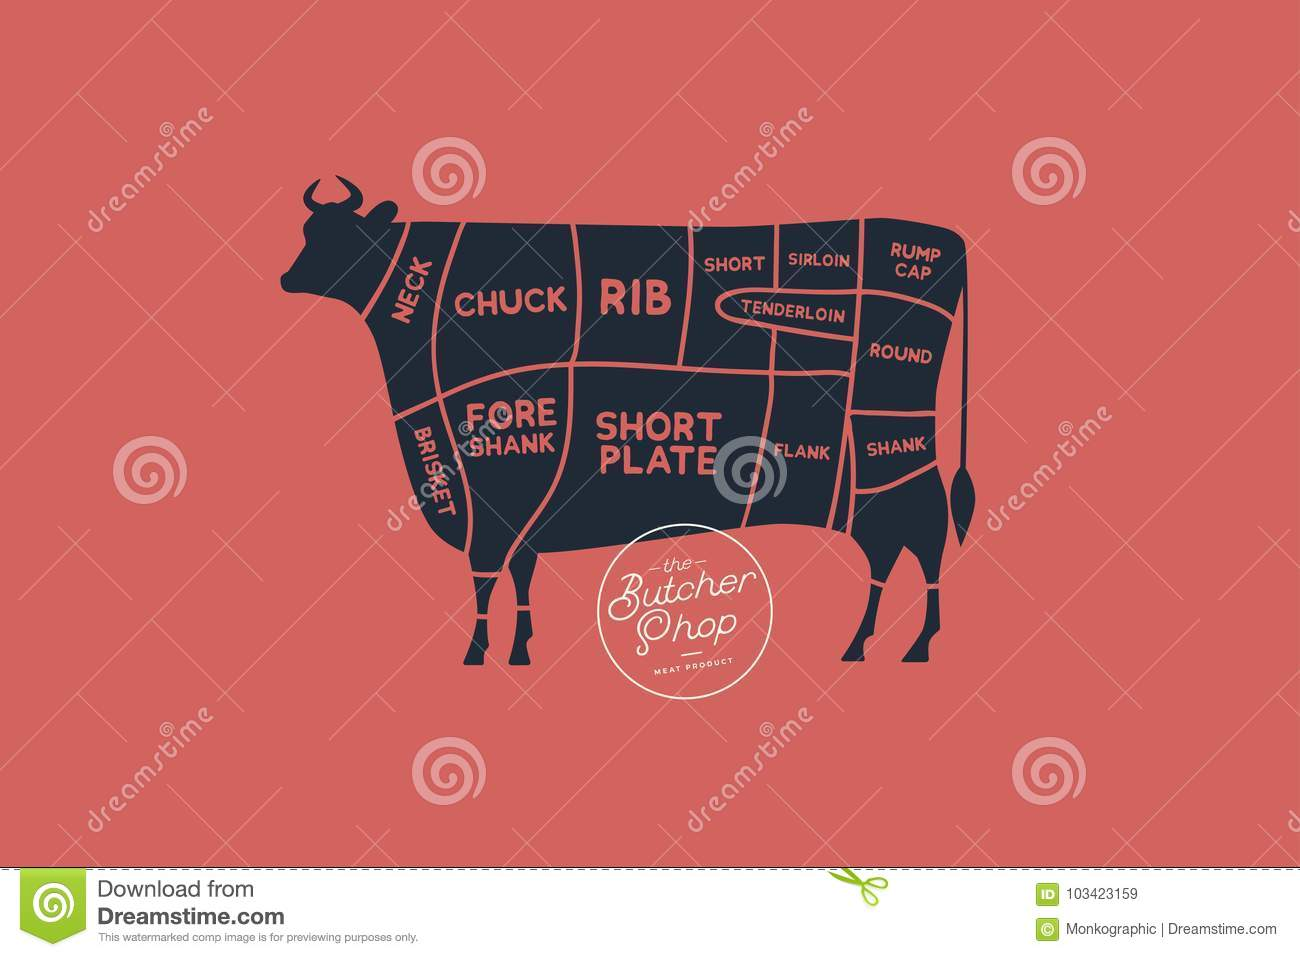 meat cuts diagrams butcher shop scheme beef meat cuts diagrams butcher shop scheme beef animal silhouette beef 103423159 meat cuts diagrams for butcher shop scheme of beef stock vector